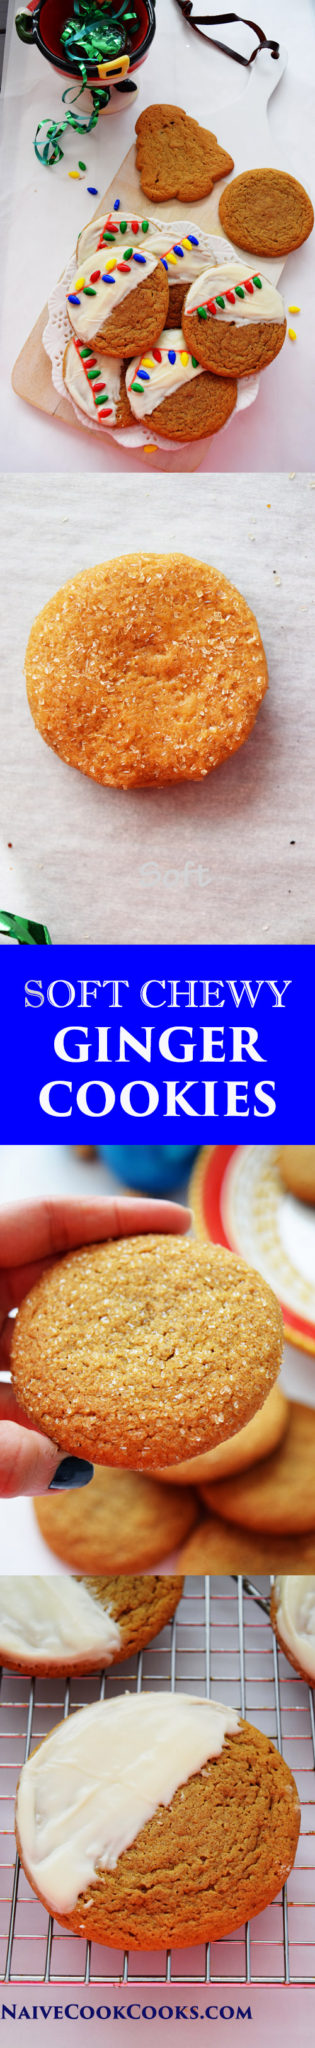 Soft Chewy Ginger Cookies for Pinterest